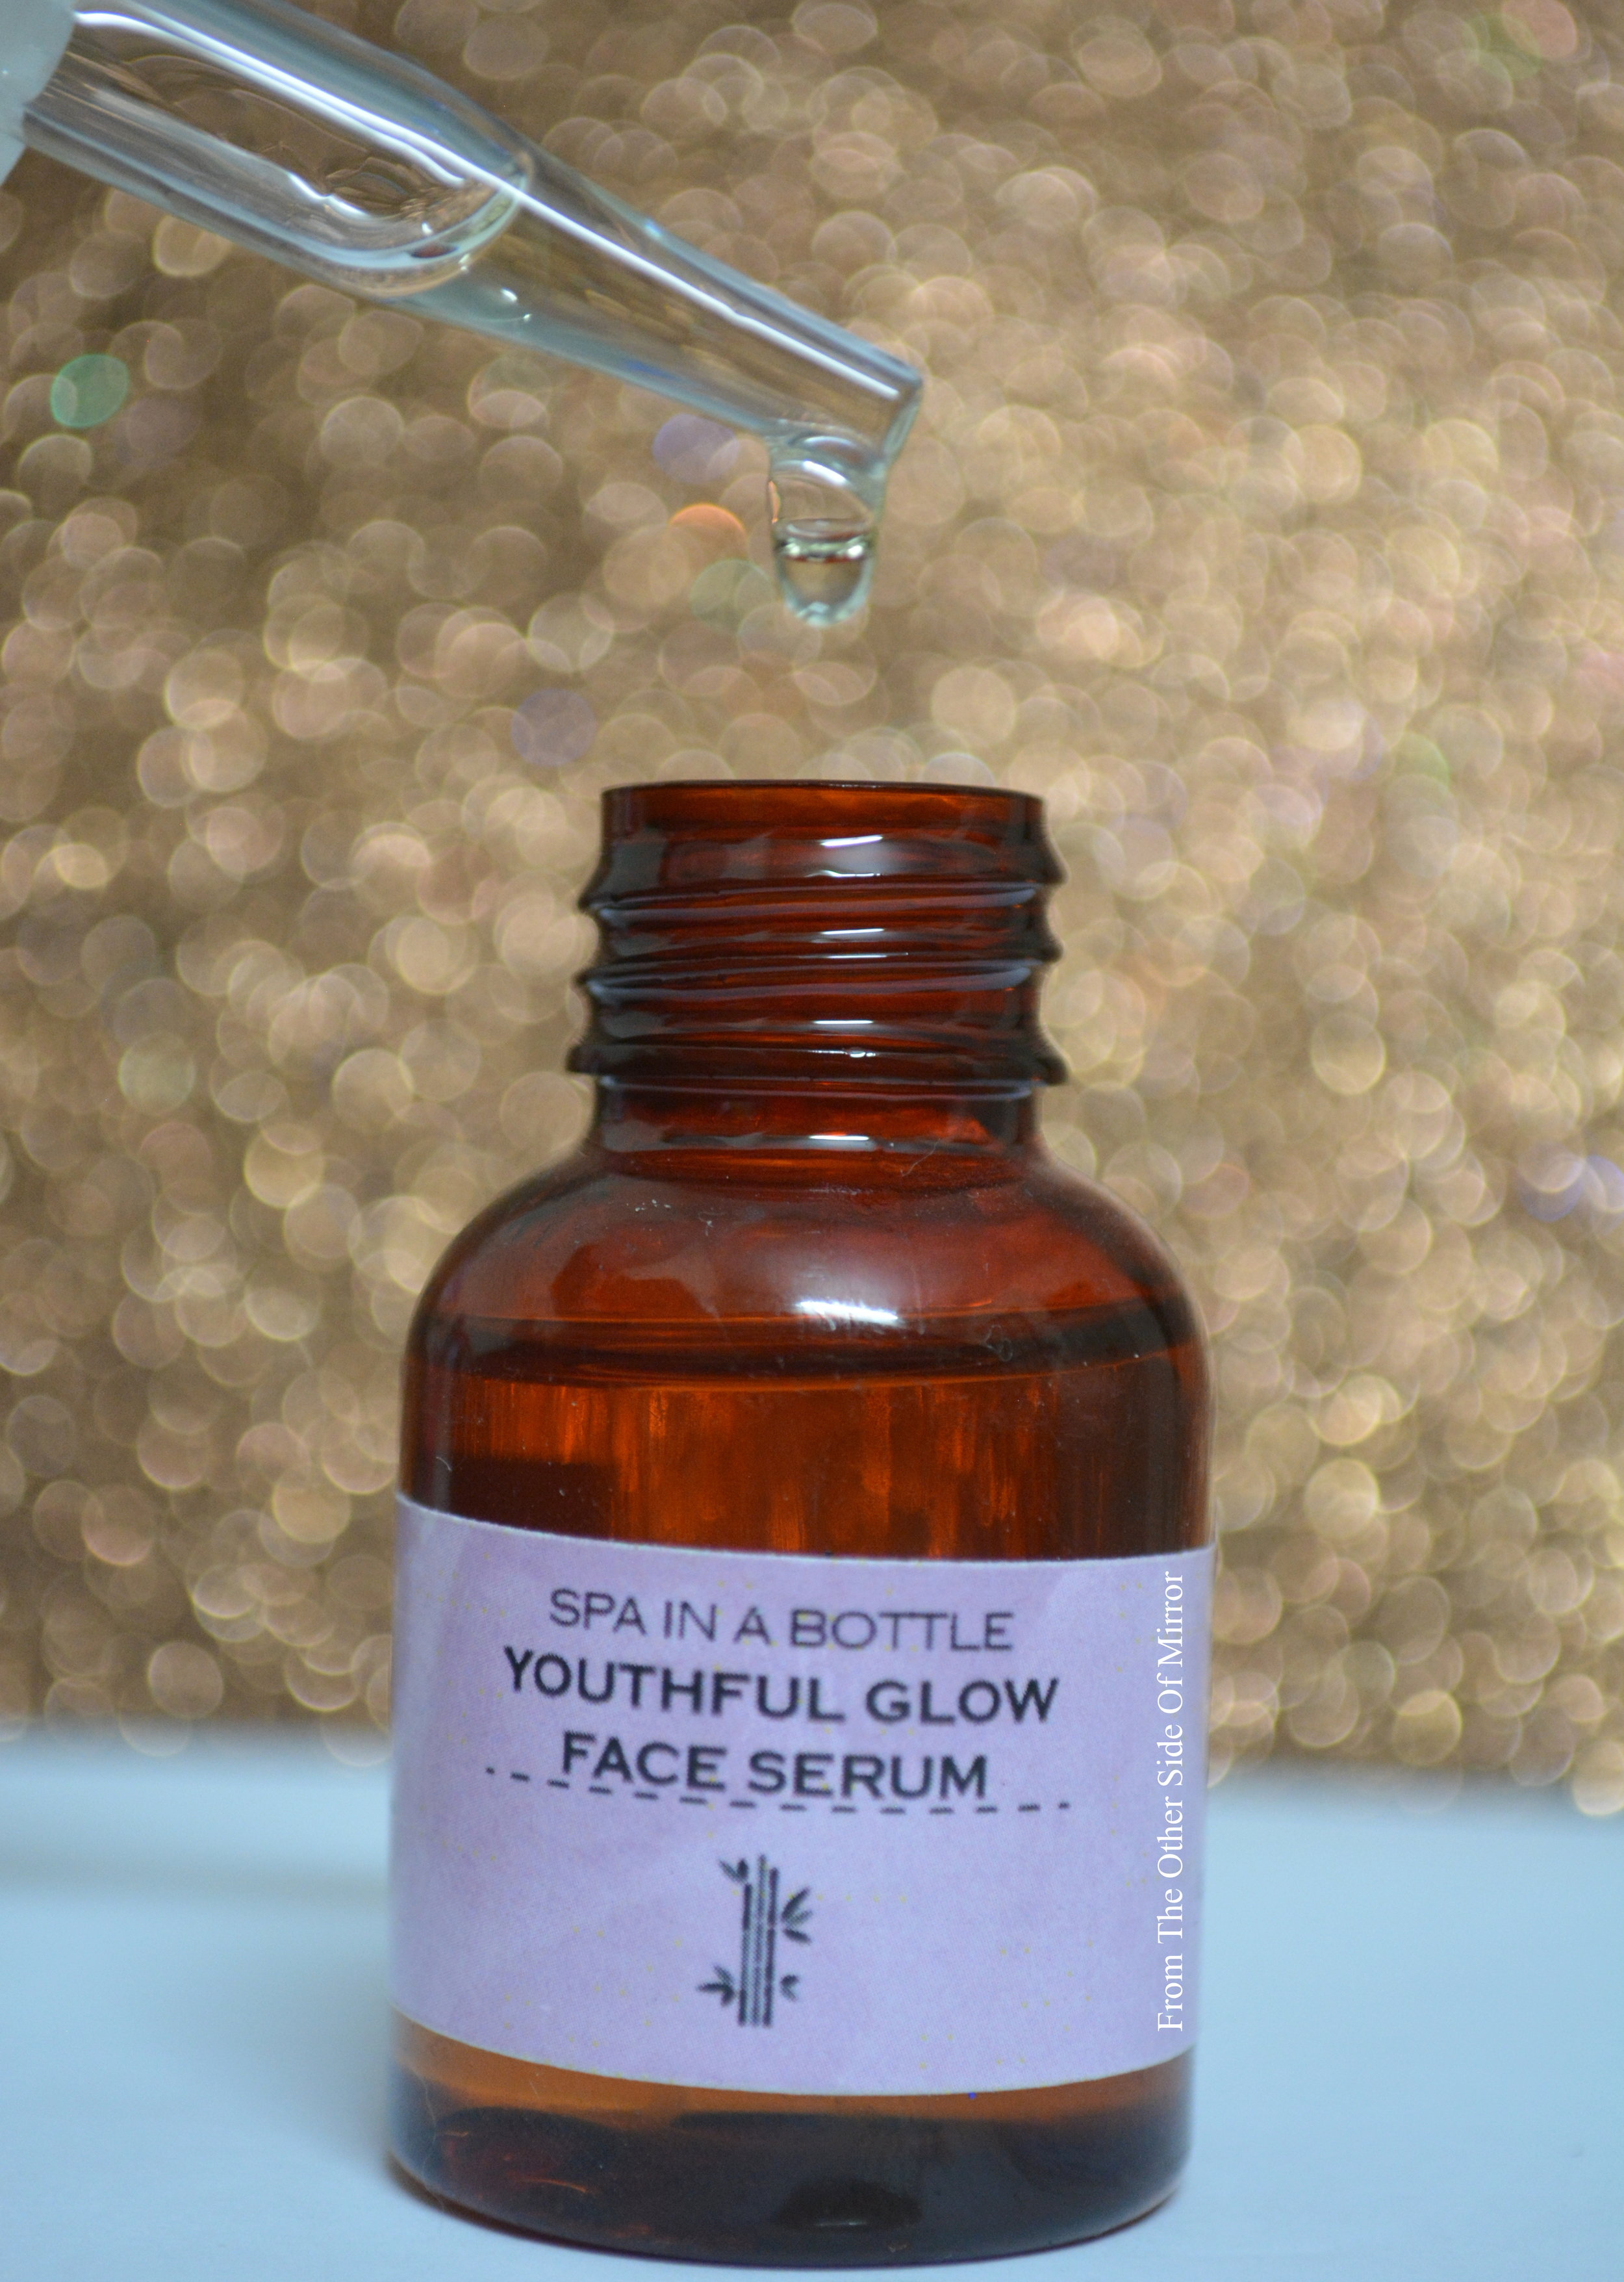 Spa in A Bottle - Youthful Glow Face Serum